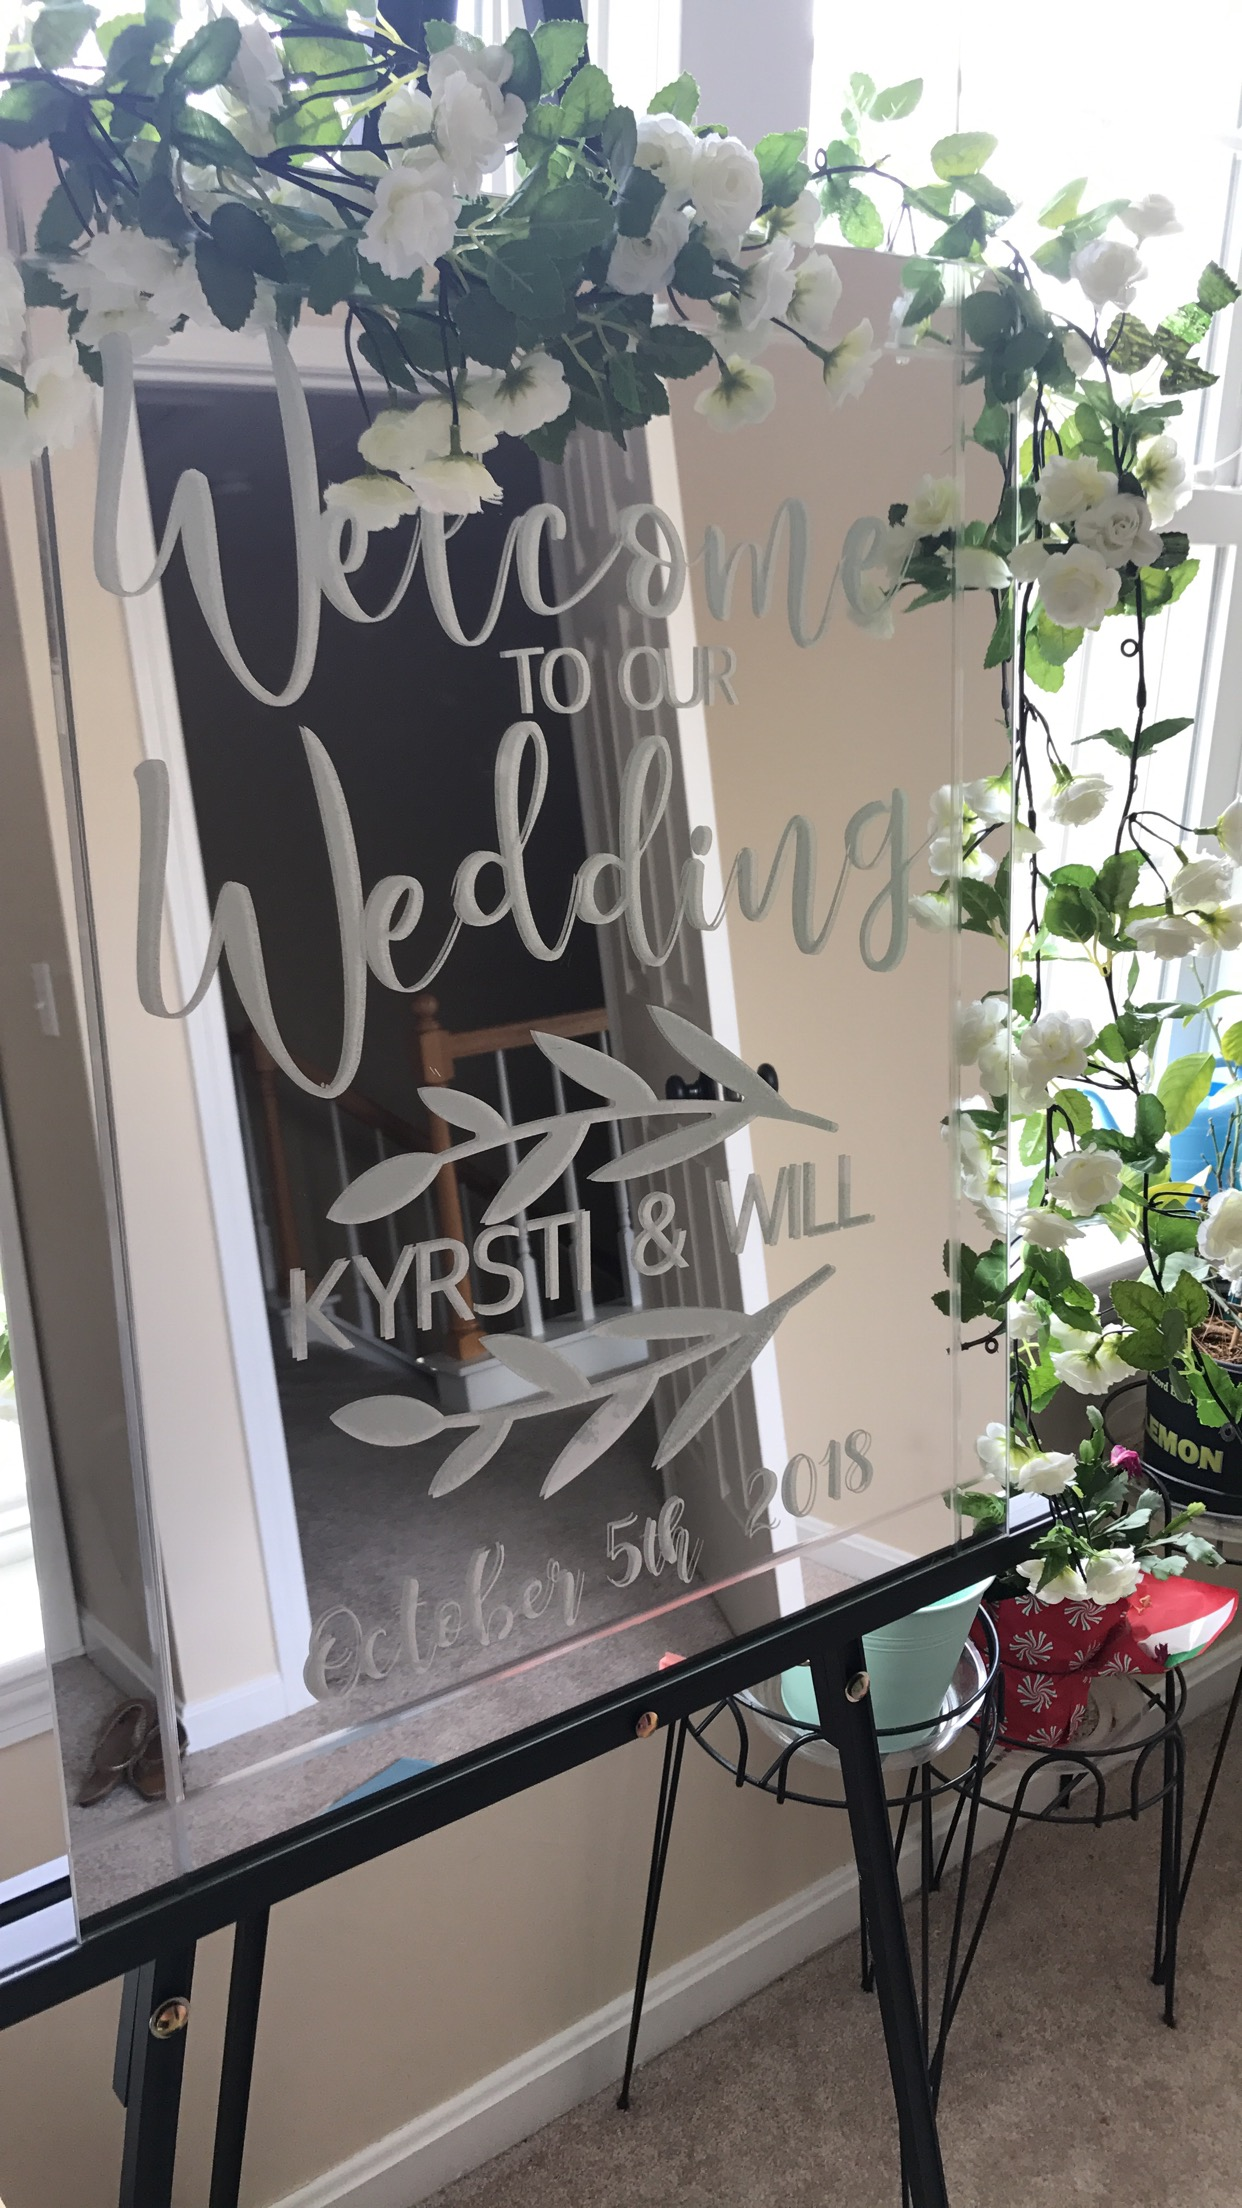 And this was my first ever project - our wedding welcome sign! (amazon link below for cling vinyl and easel)